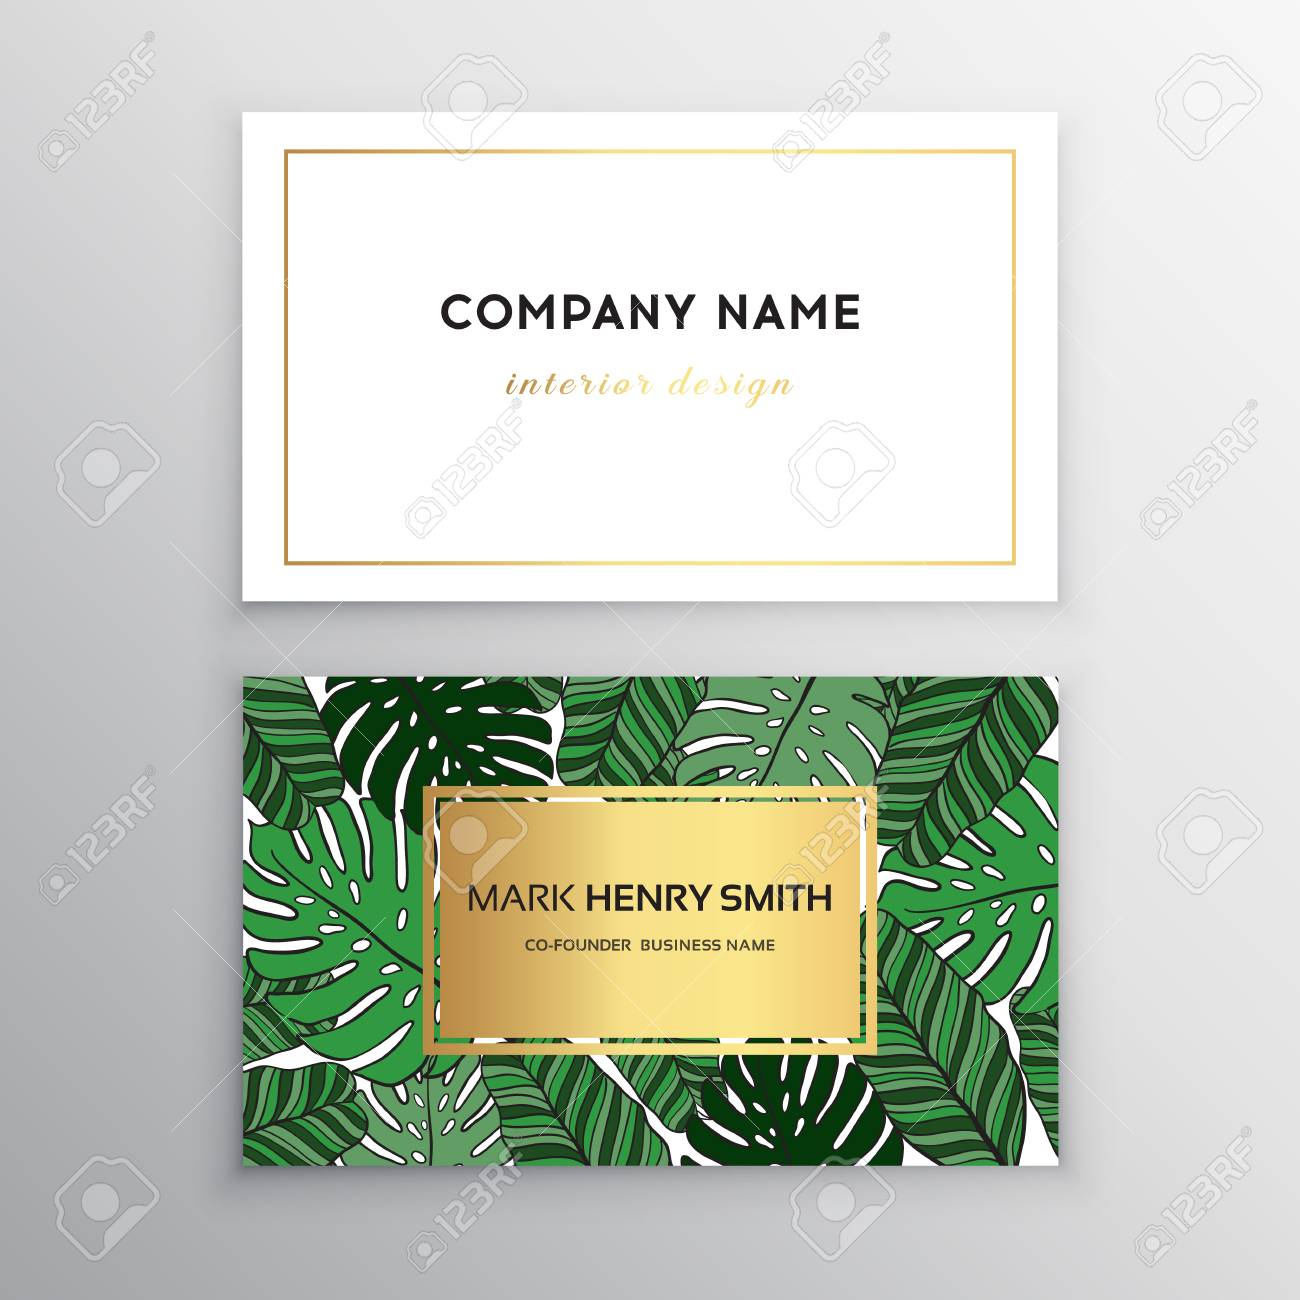 business cards gold design tropical leaf vector illustration corporate identity templates in tropical